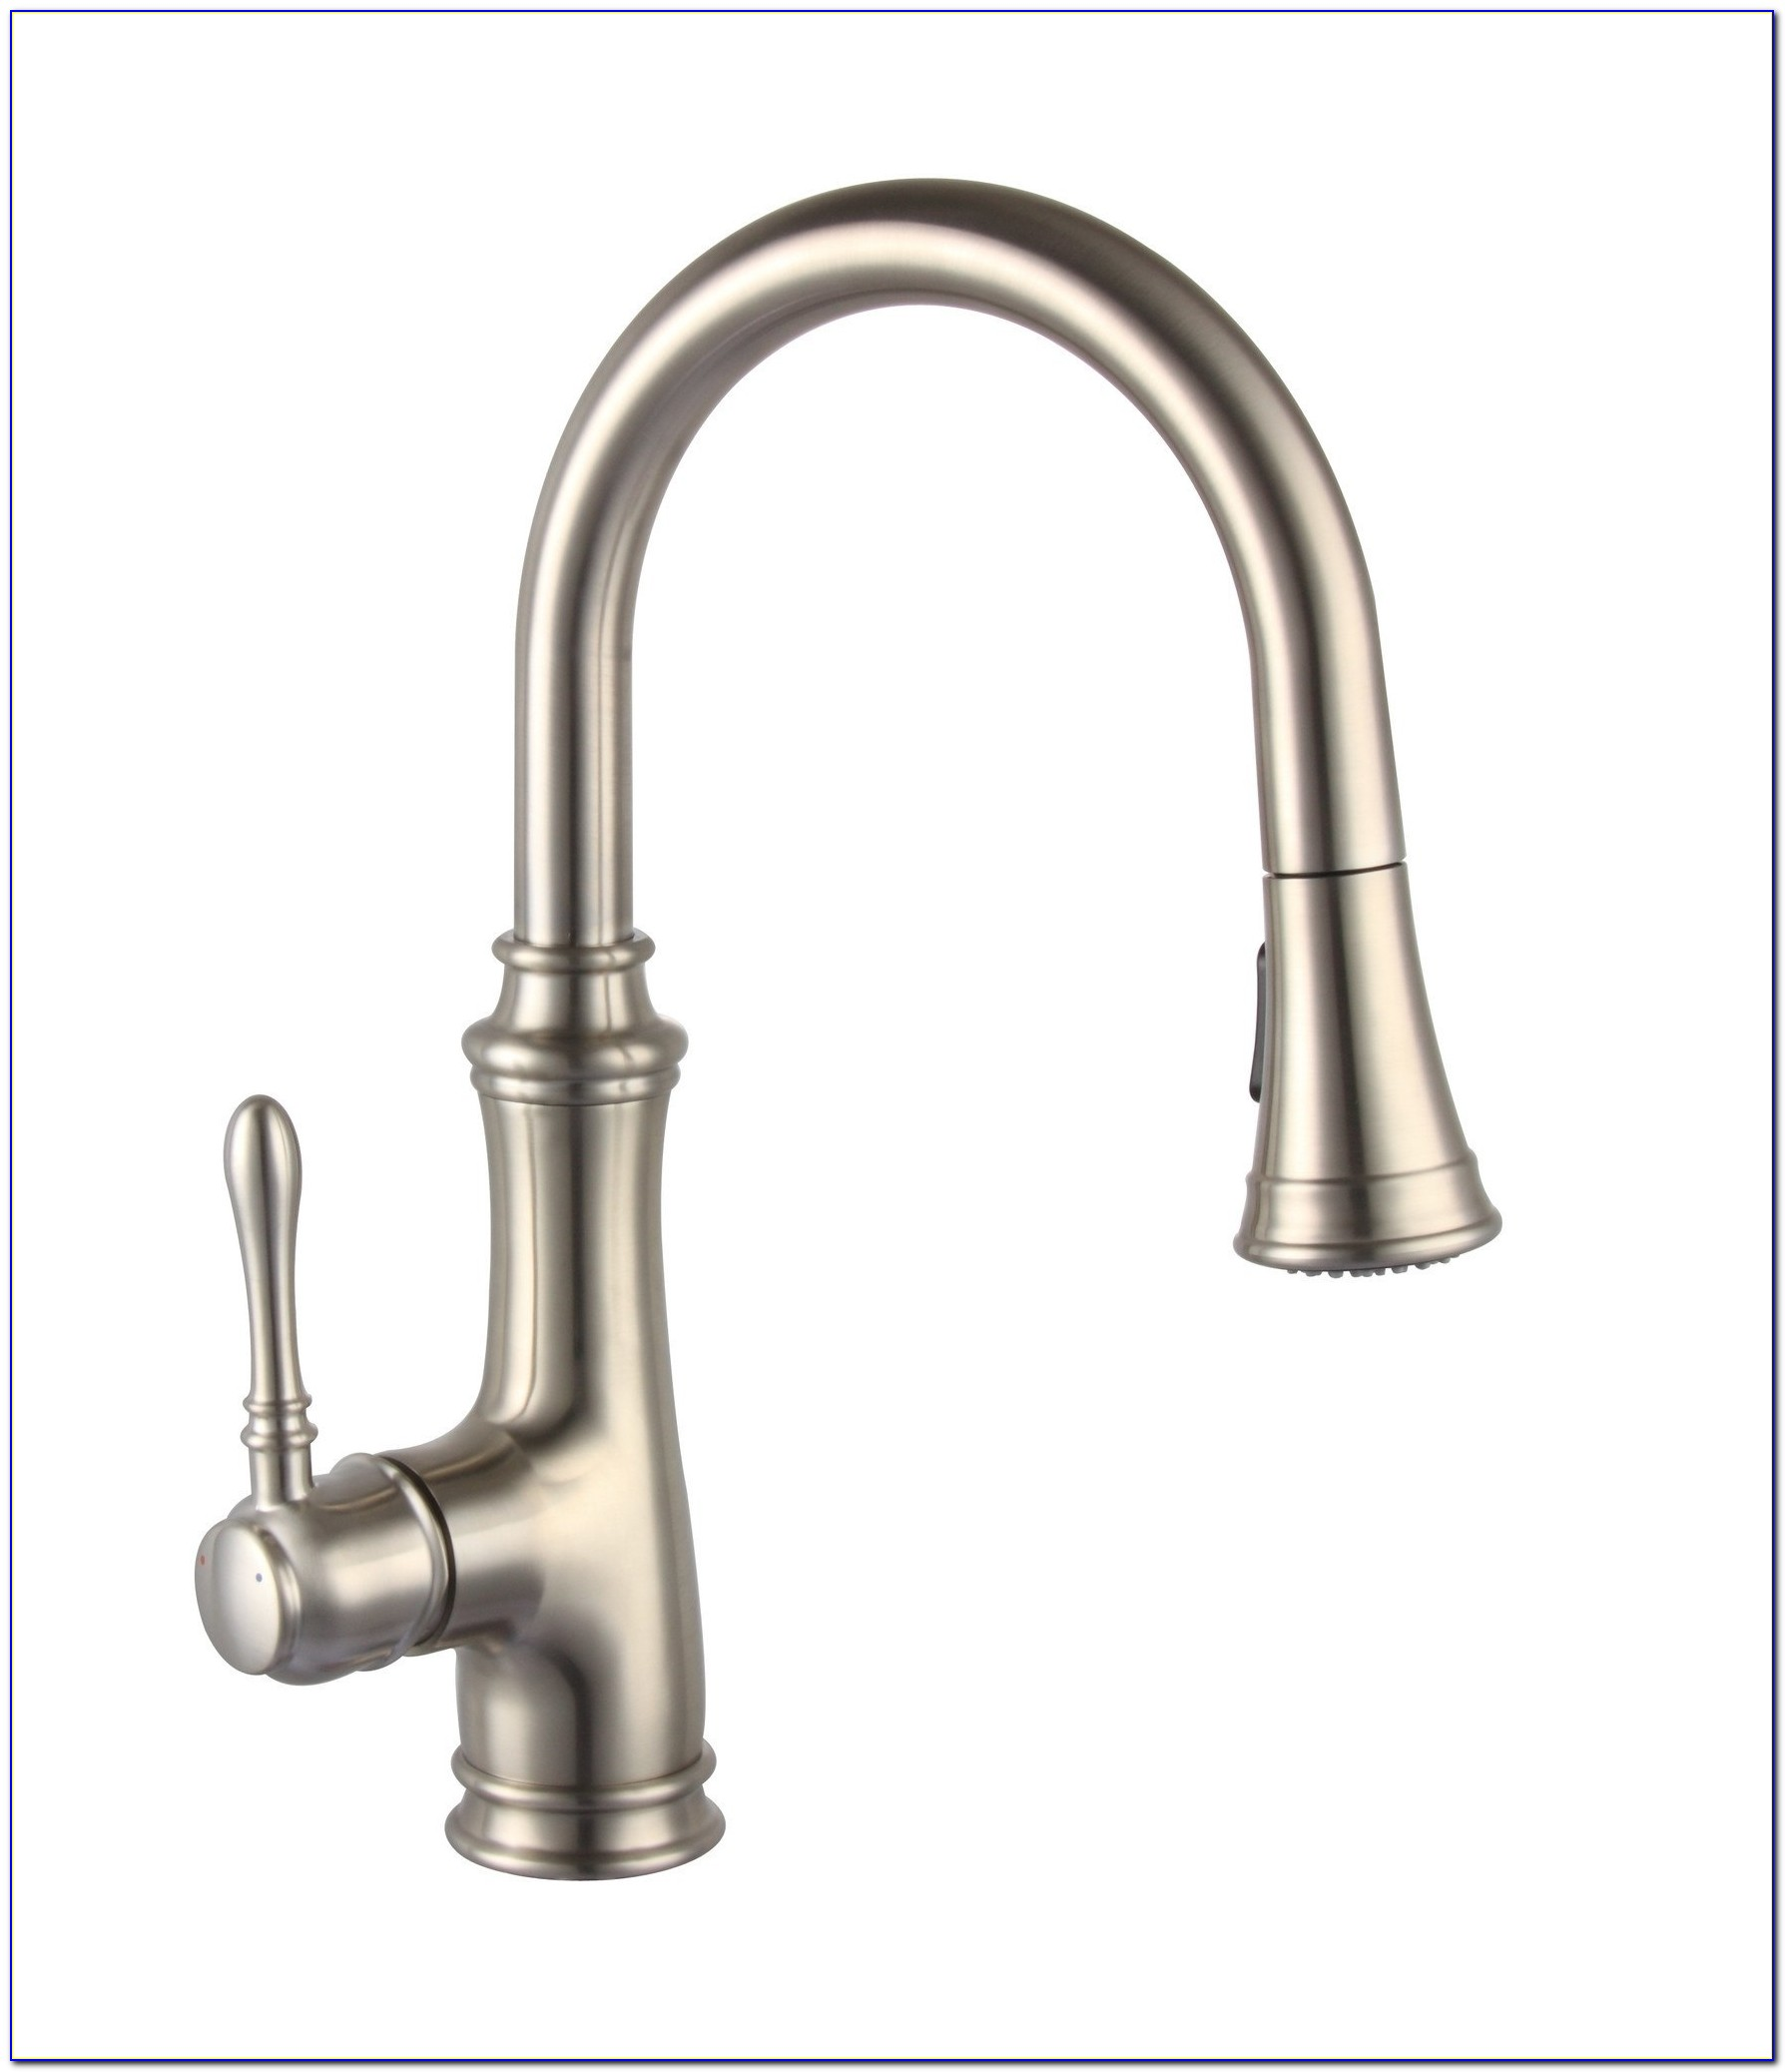 Delta Brushed Nickel Pull Down Kitchen Faucet Delta Brushed Nickel Pull Down Kitchen Faucet Kitchen Outstanding Kitchen Faucets For Modern Kitchen Faucet 1761 X 2048